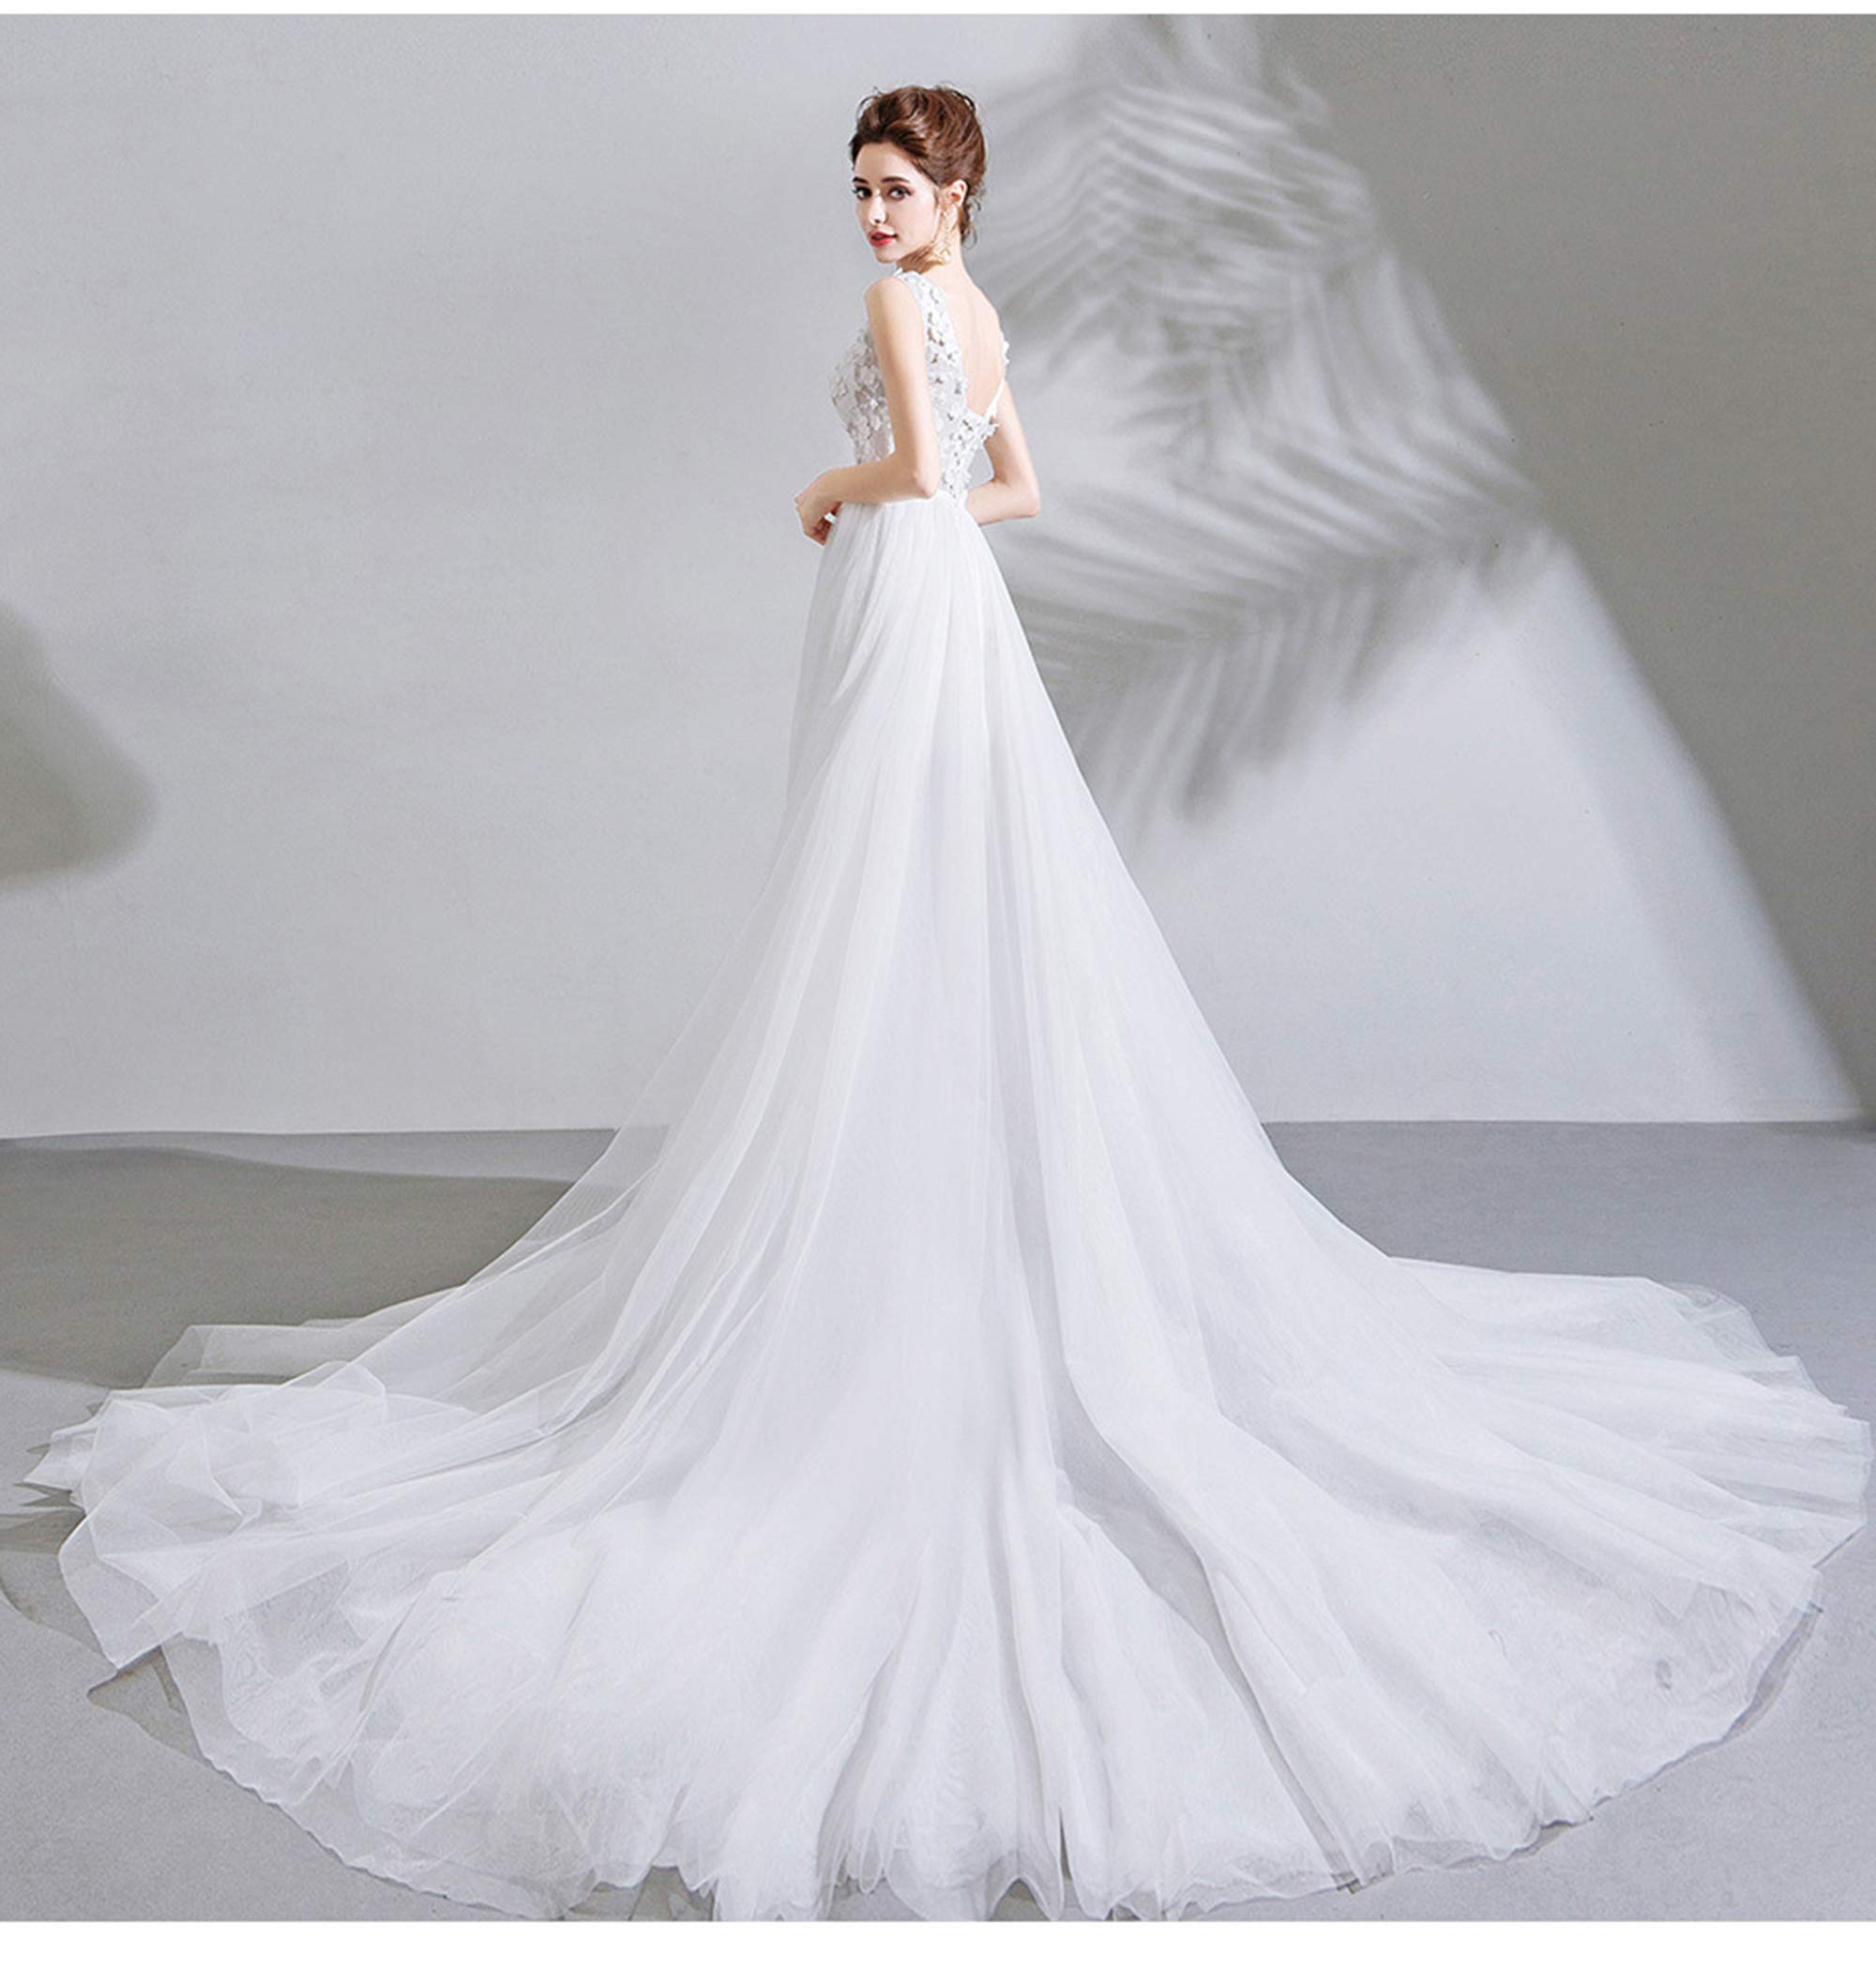 NOMSOCR Women's Lace V Neck Sleeveless Wedding Dresses Mermaid Bridal Gown (M, White) by NOMSOCR (Image #3)